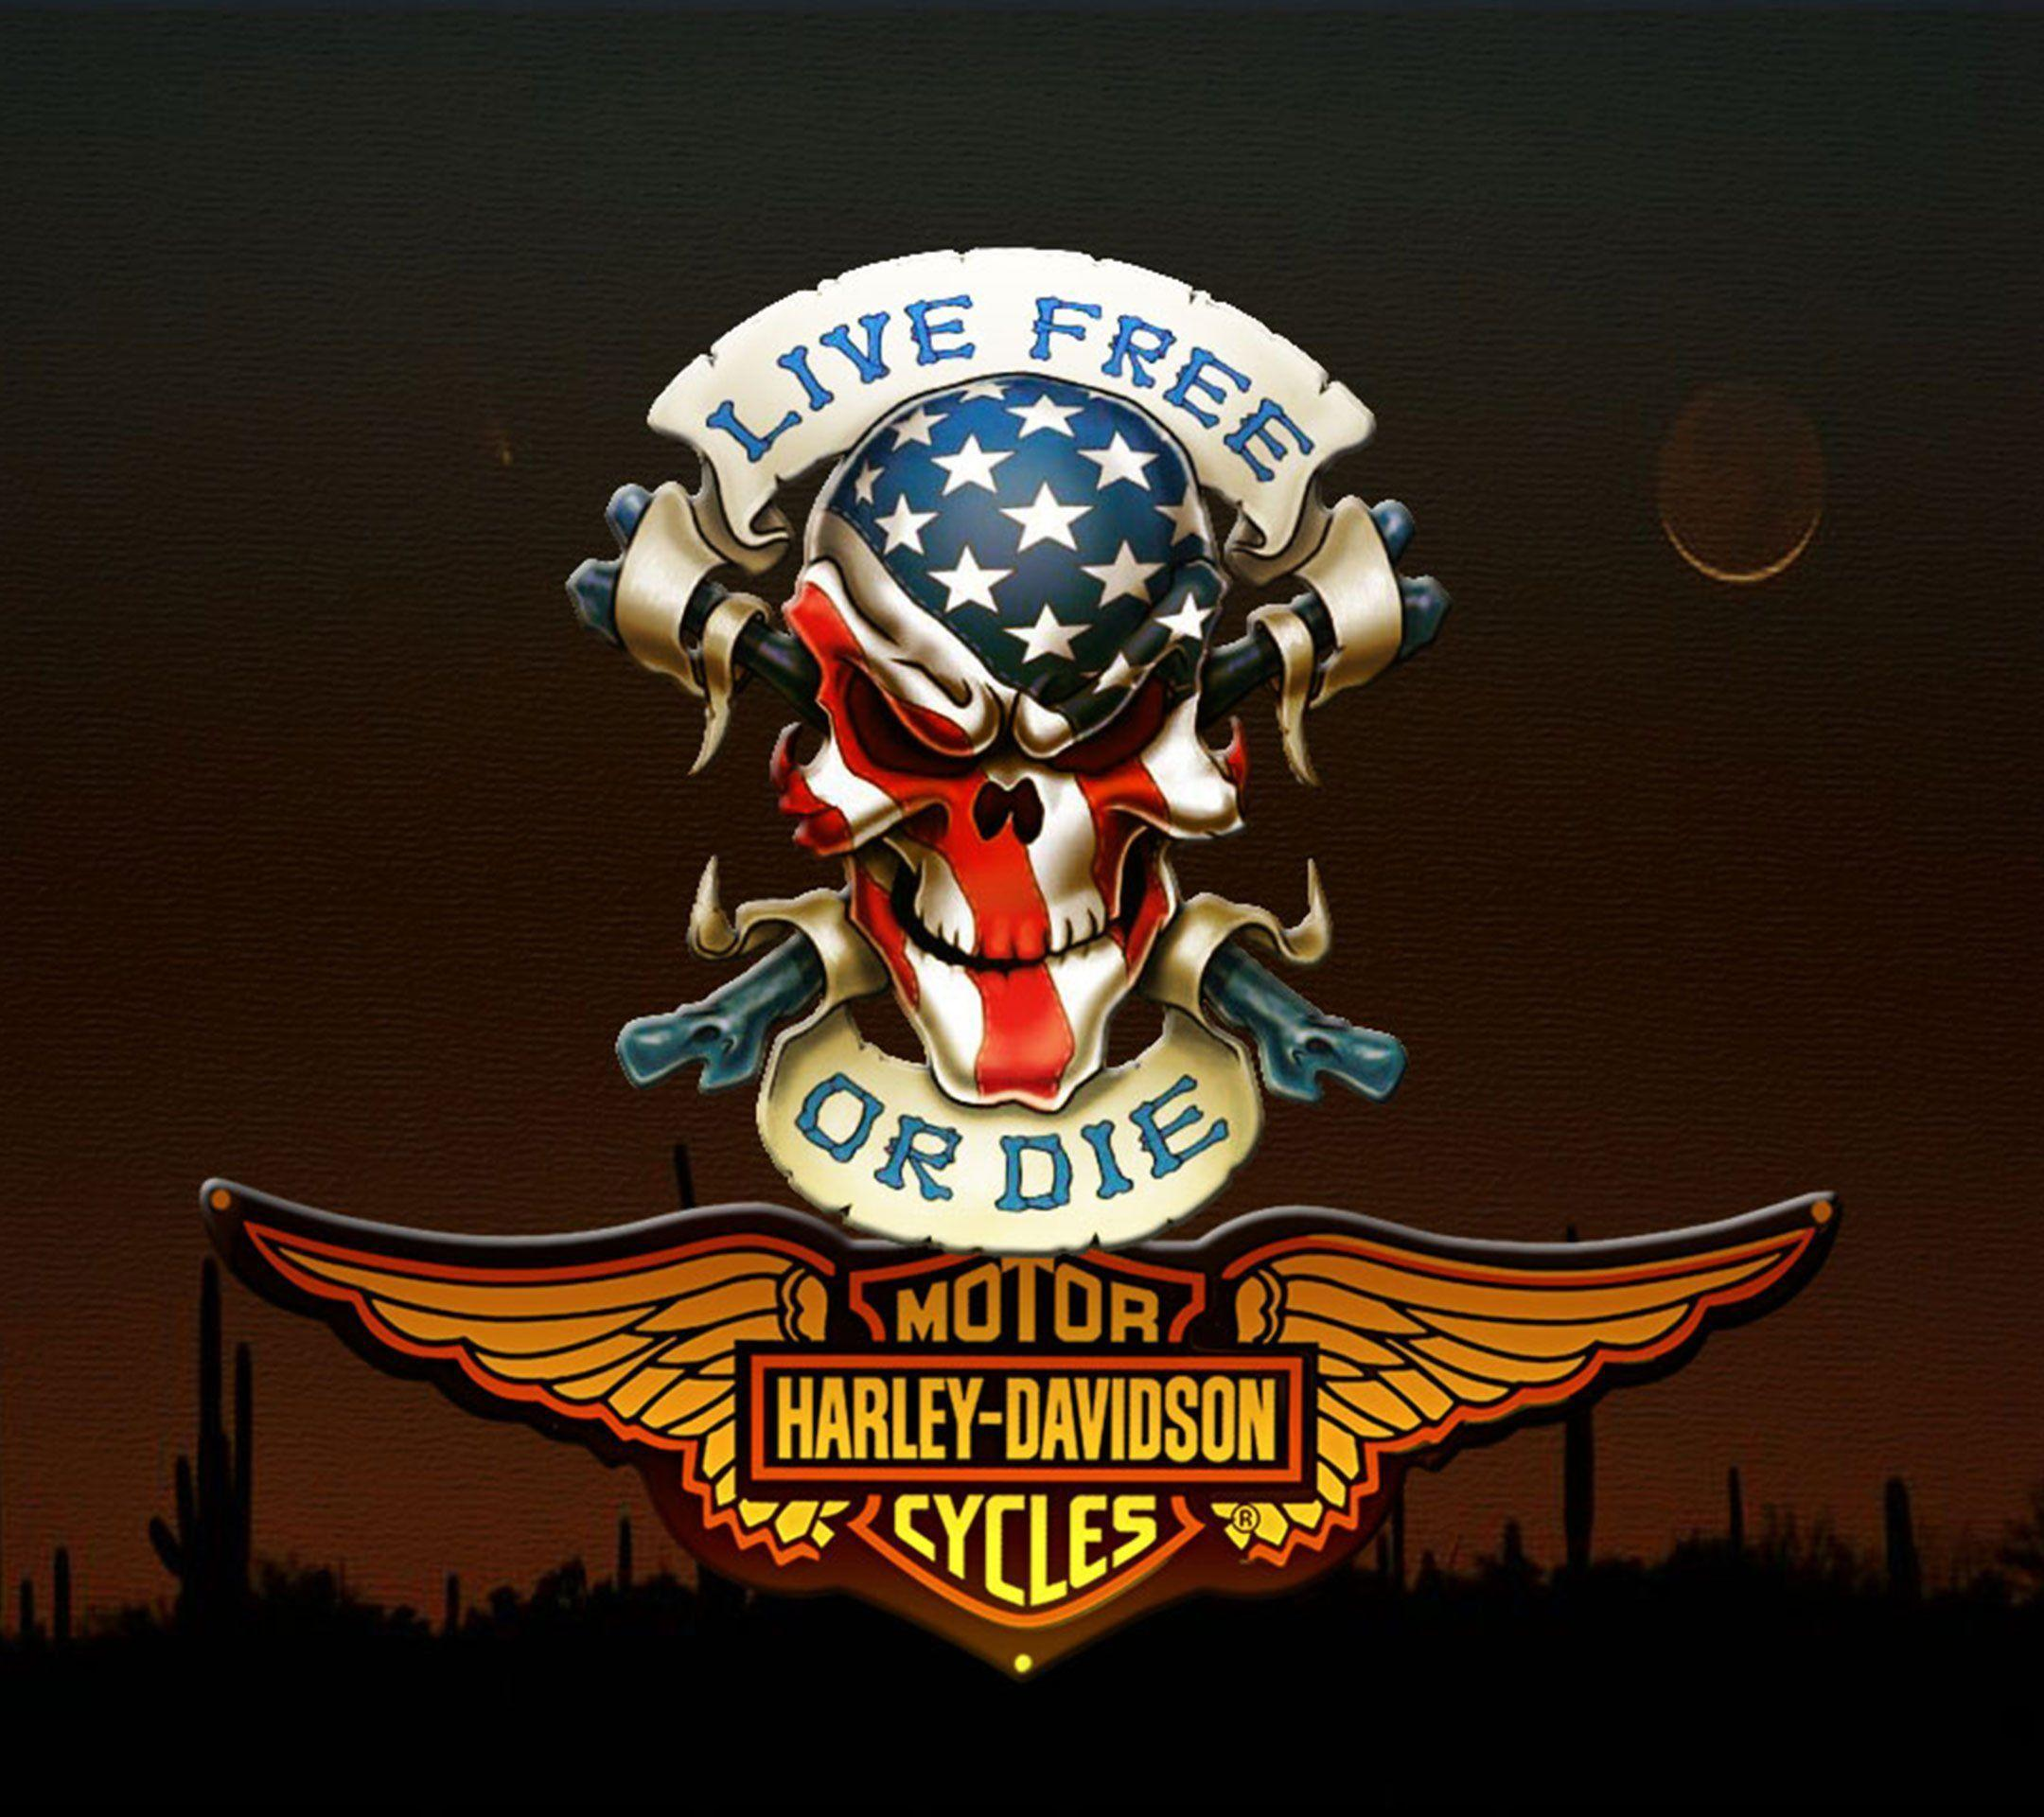 newest harley davidson logo wallpapers - photo #14